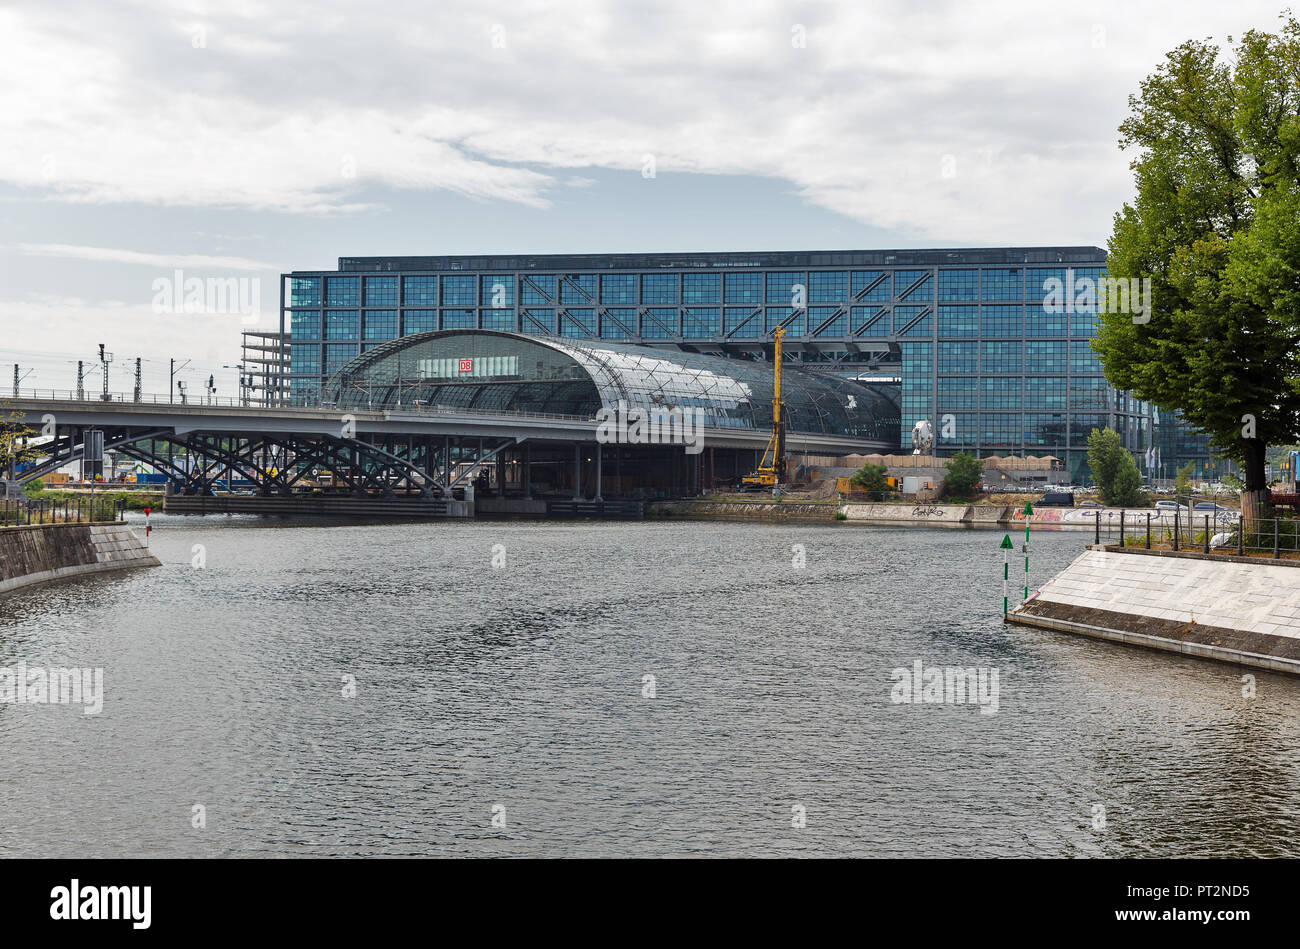 BERLIN, GERMANY - JULY 13, 2018: Westhafenkanal and Central Passenger Railway Station Hauptbahnhof. The station is operated by DB Station and Service, Stock Photo